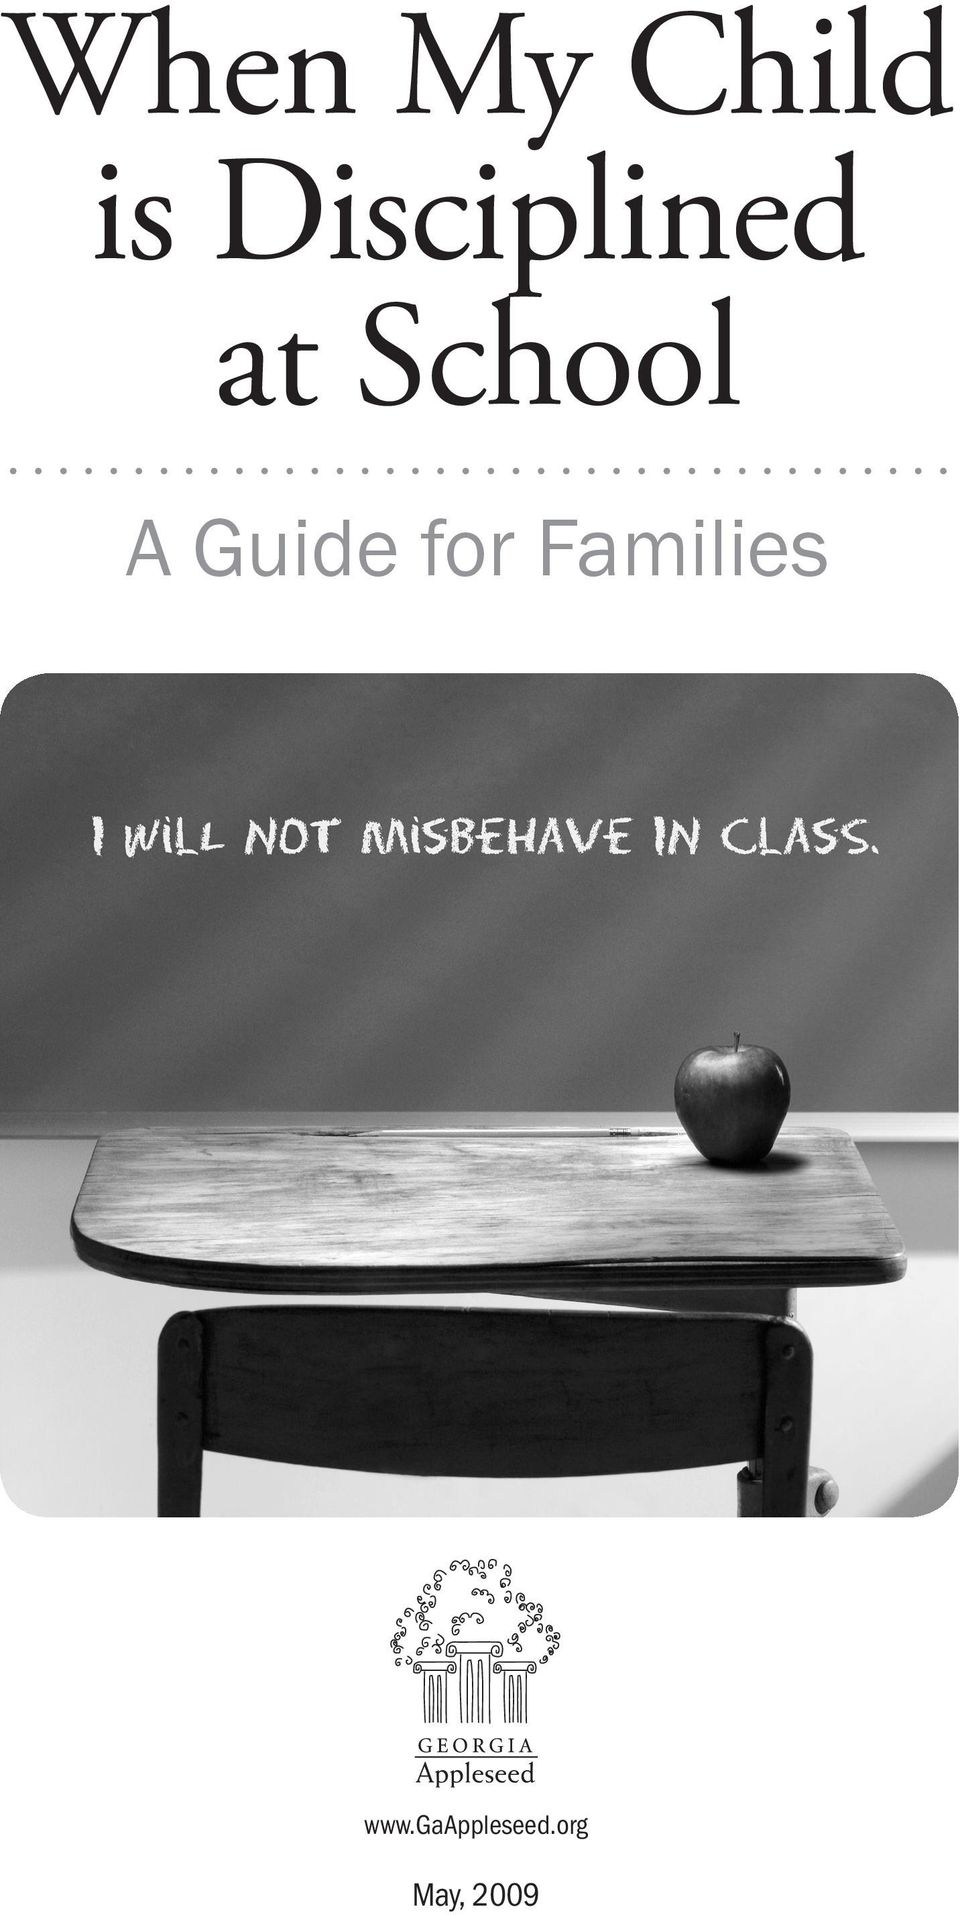 A Guide for Families